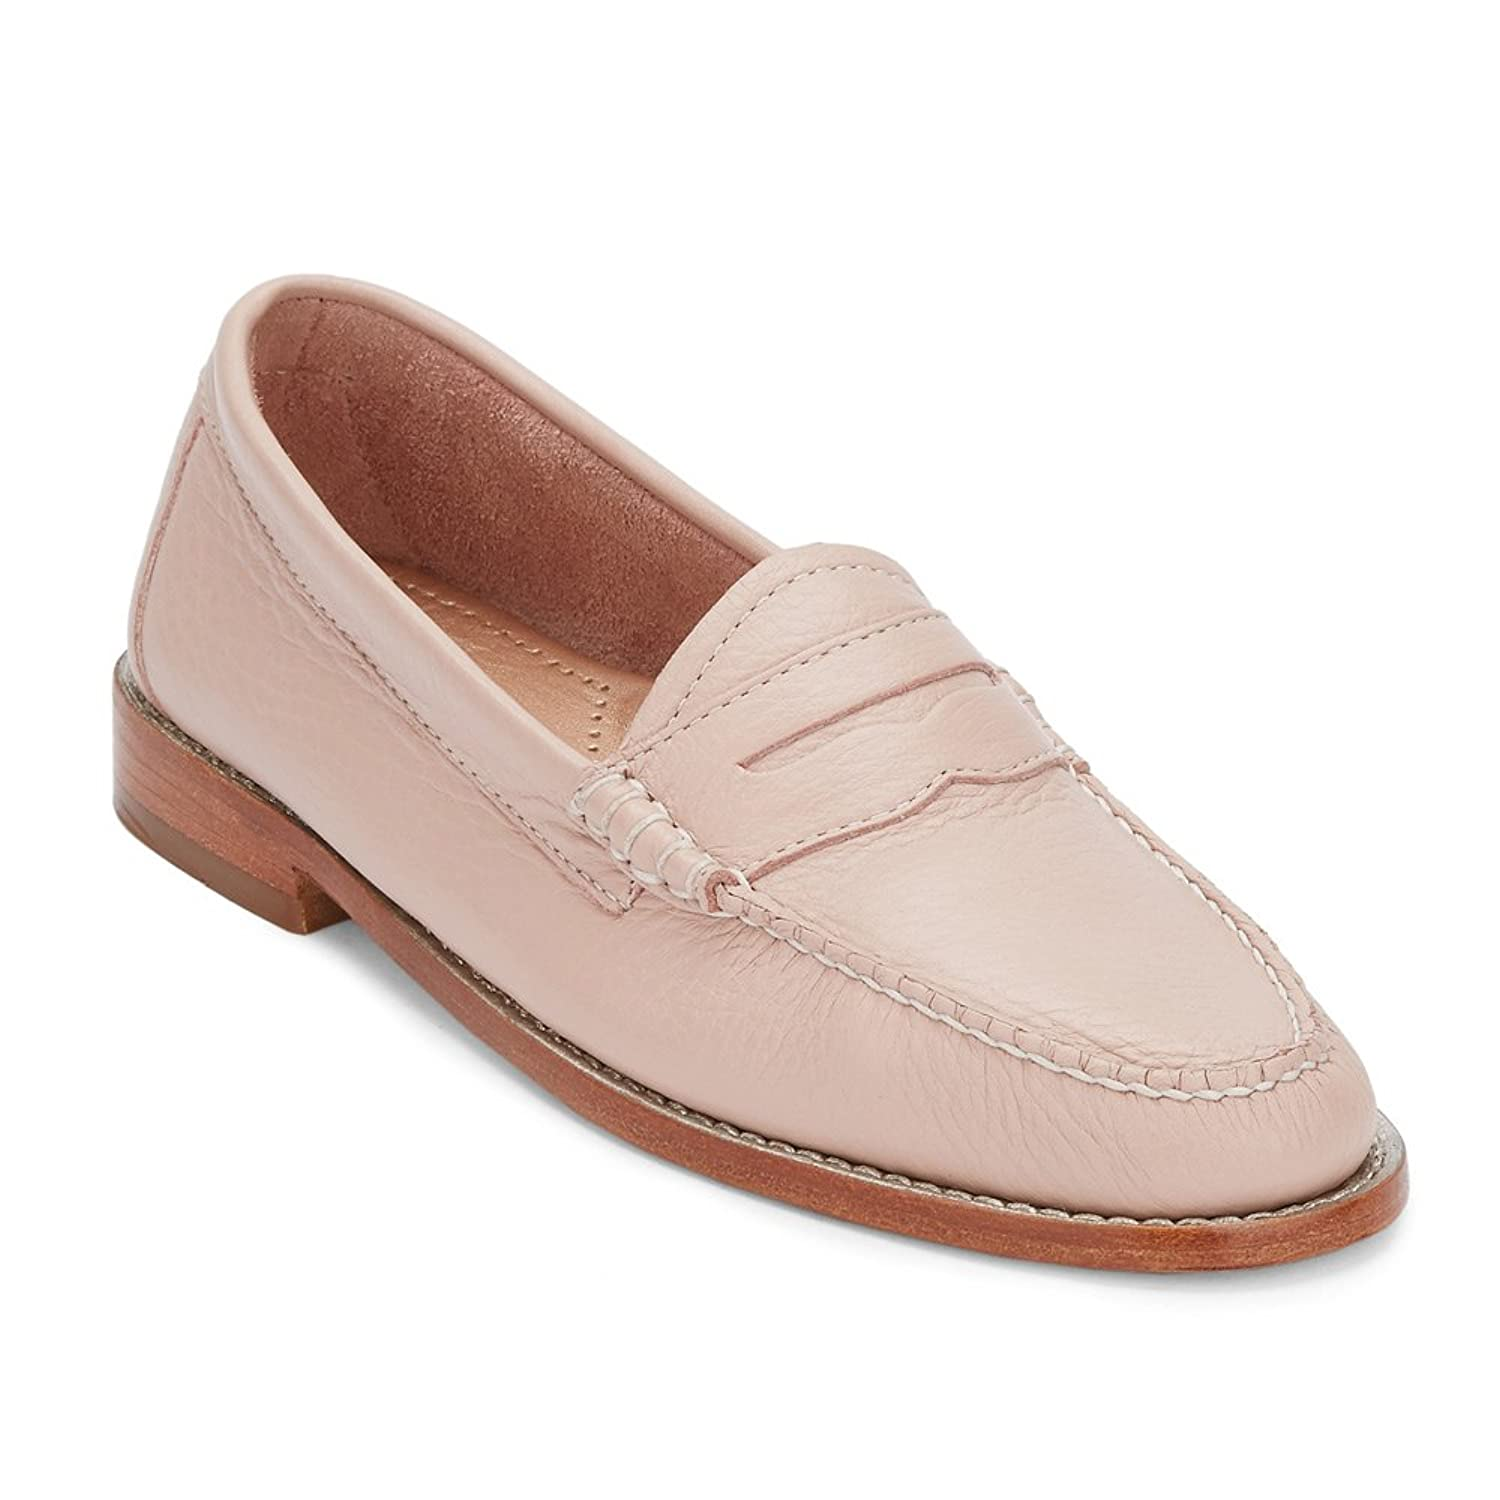 G.H. Bass & Co. Women's Whitney Penny Loafer, Blush Pink